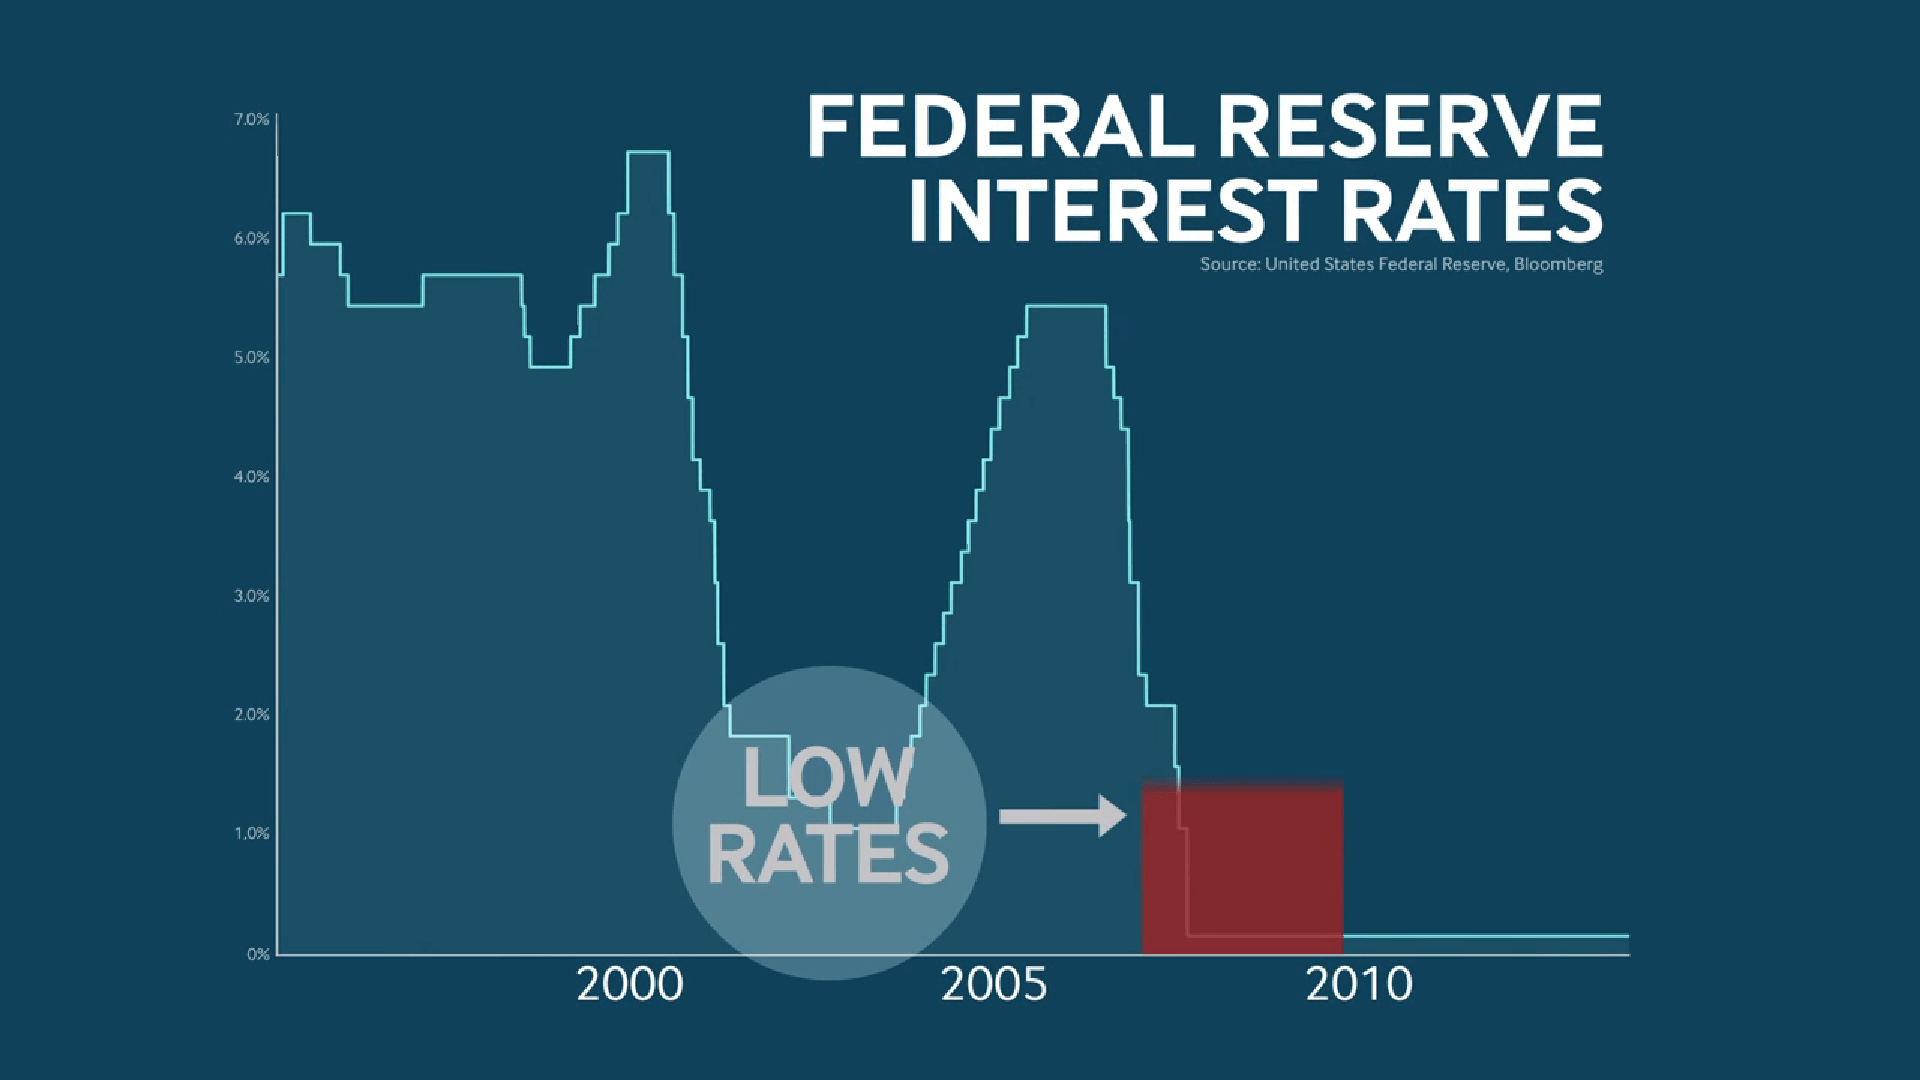 Ultimately, what's the price of low interest rates?